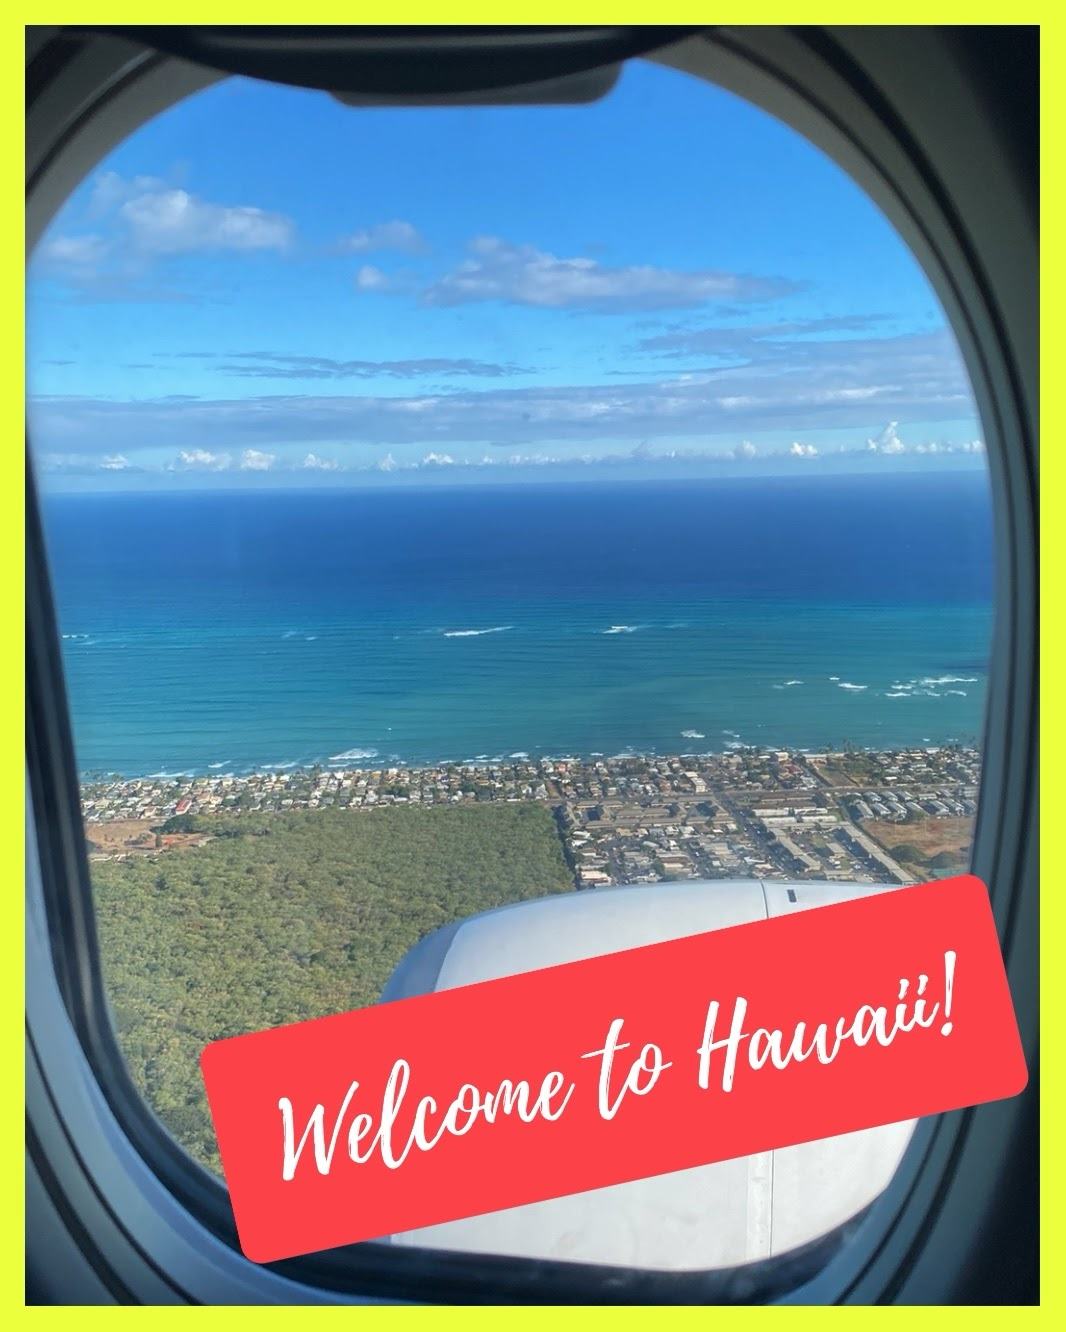 We are finally on our way! Let's travel to  Hawaii!